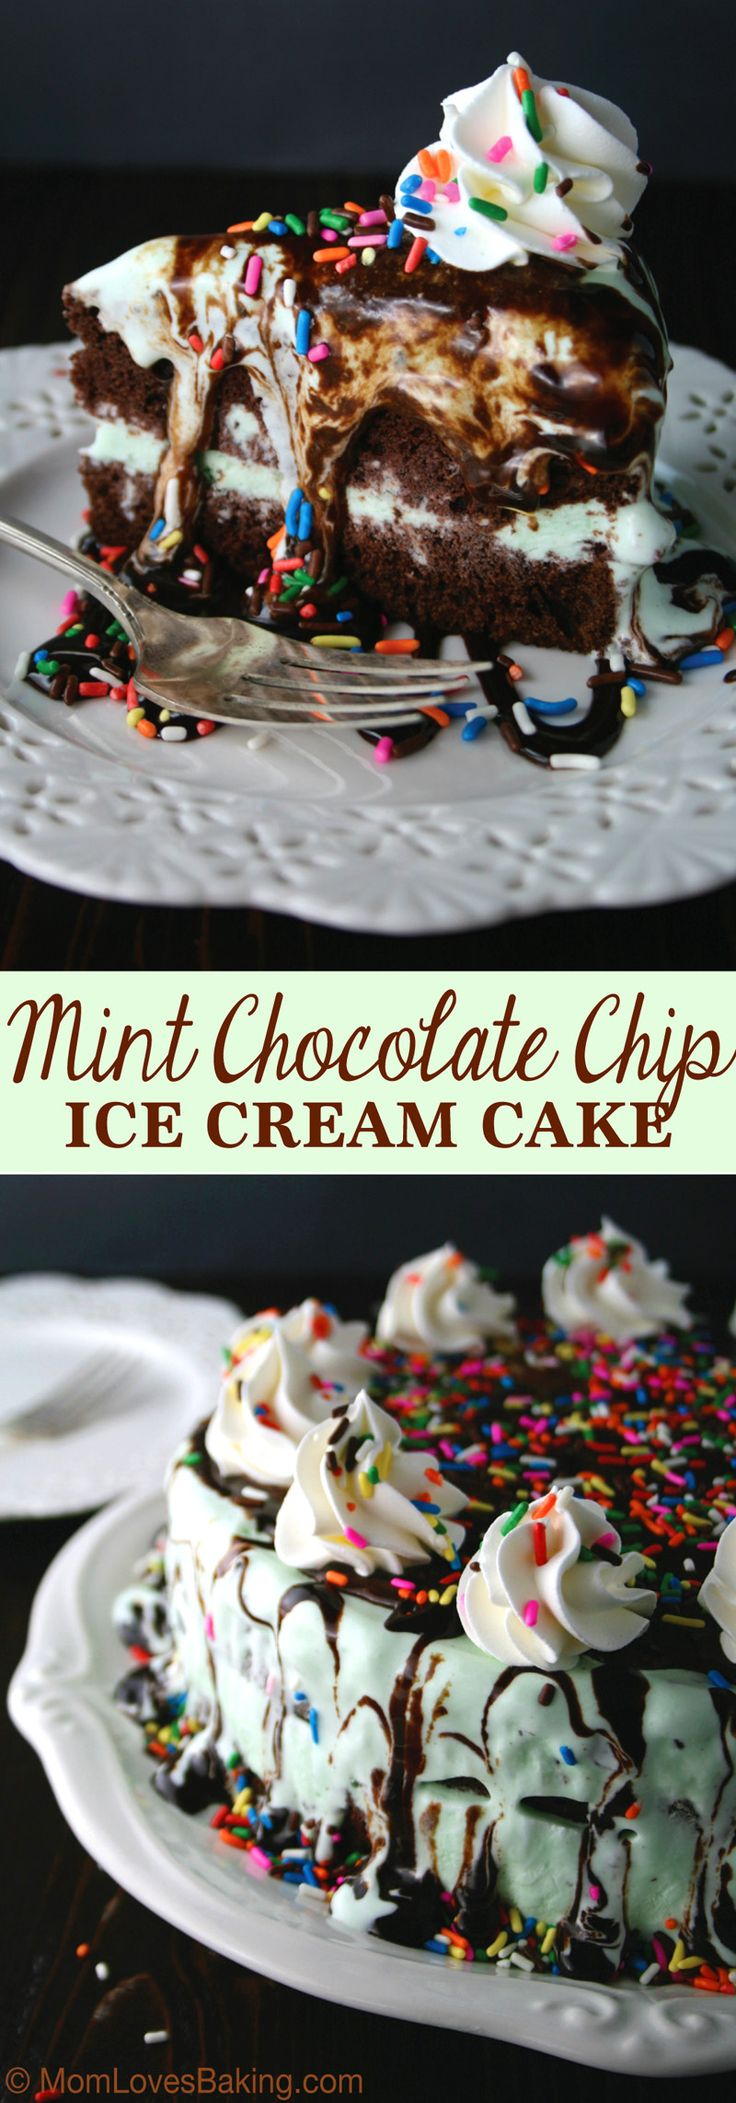 Mint Chocolate Chip Ice Cream Cake is a super easy, four layer cake topped with chocolate syrup and sprinkles. #SoHoppinGood #ad